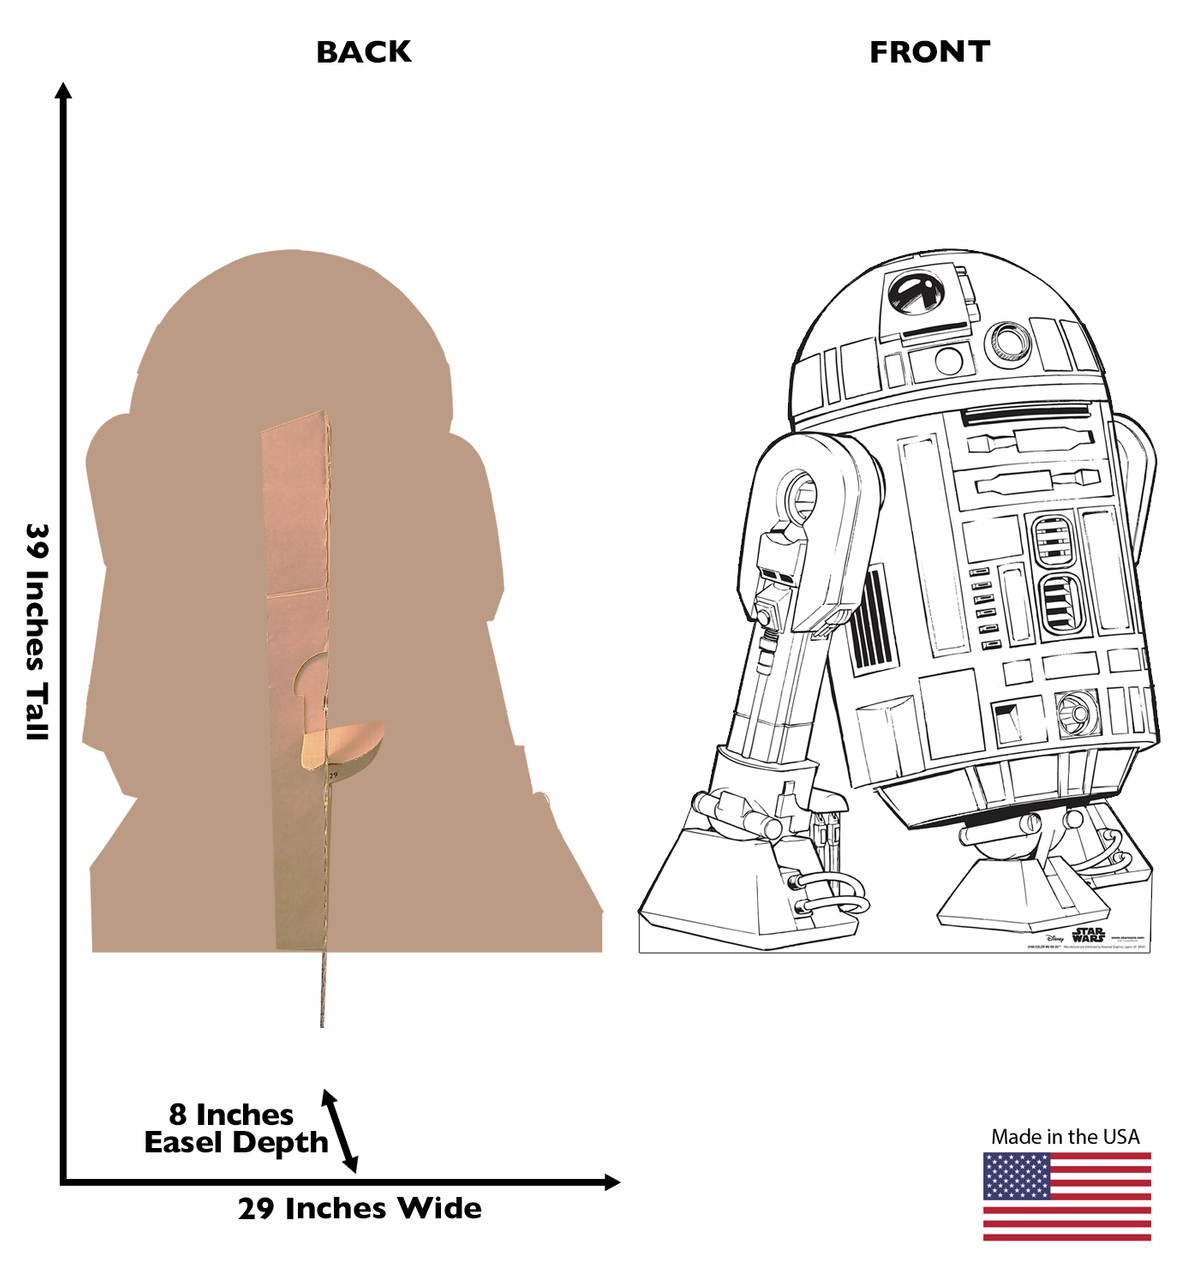 Life-size Color Me R2-D2 Standee with front and back dimensions.